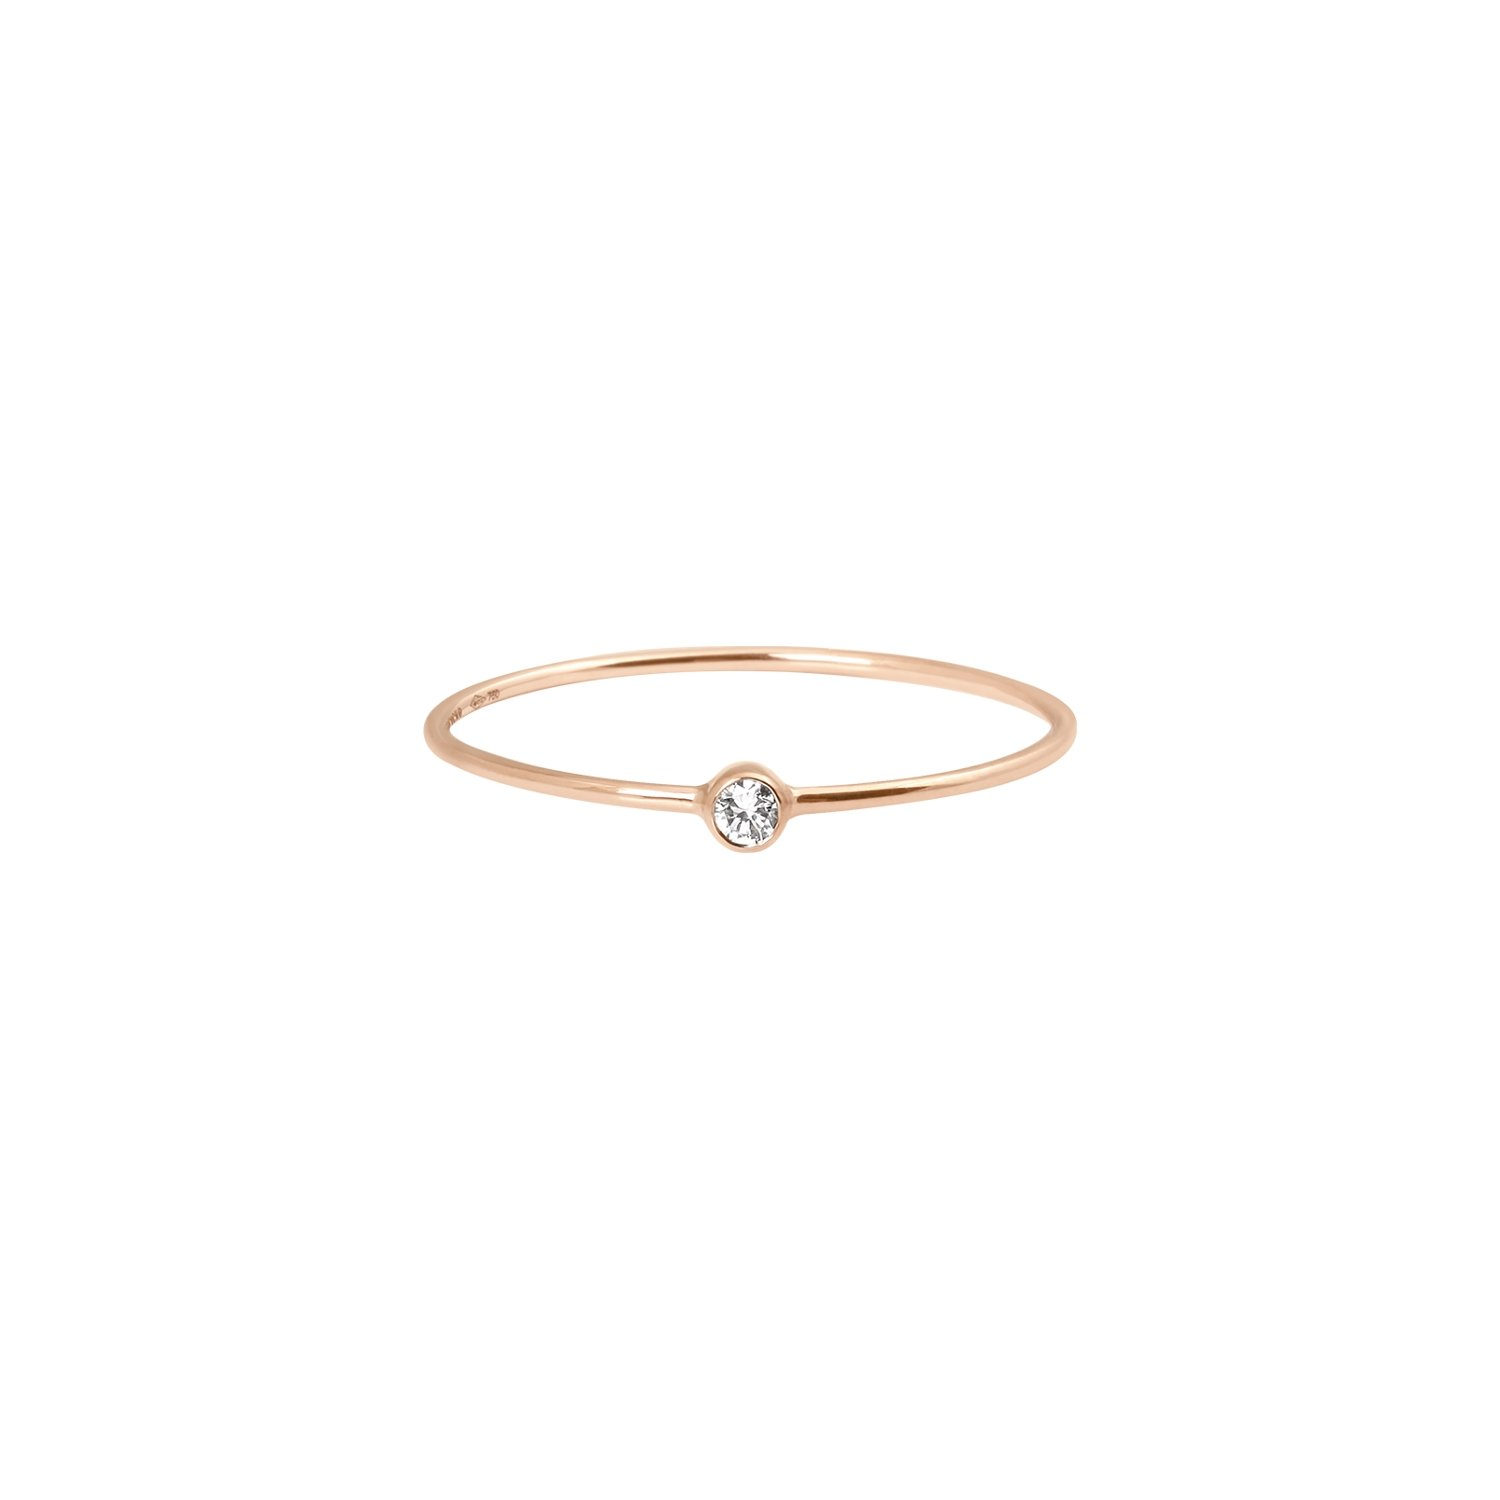 Bague Vanrycke One en or rose et 1 diamant vue 1